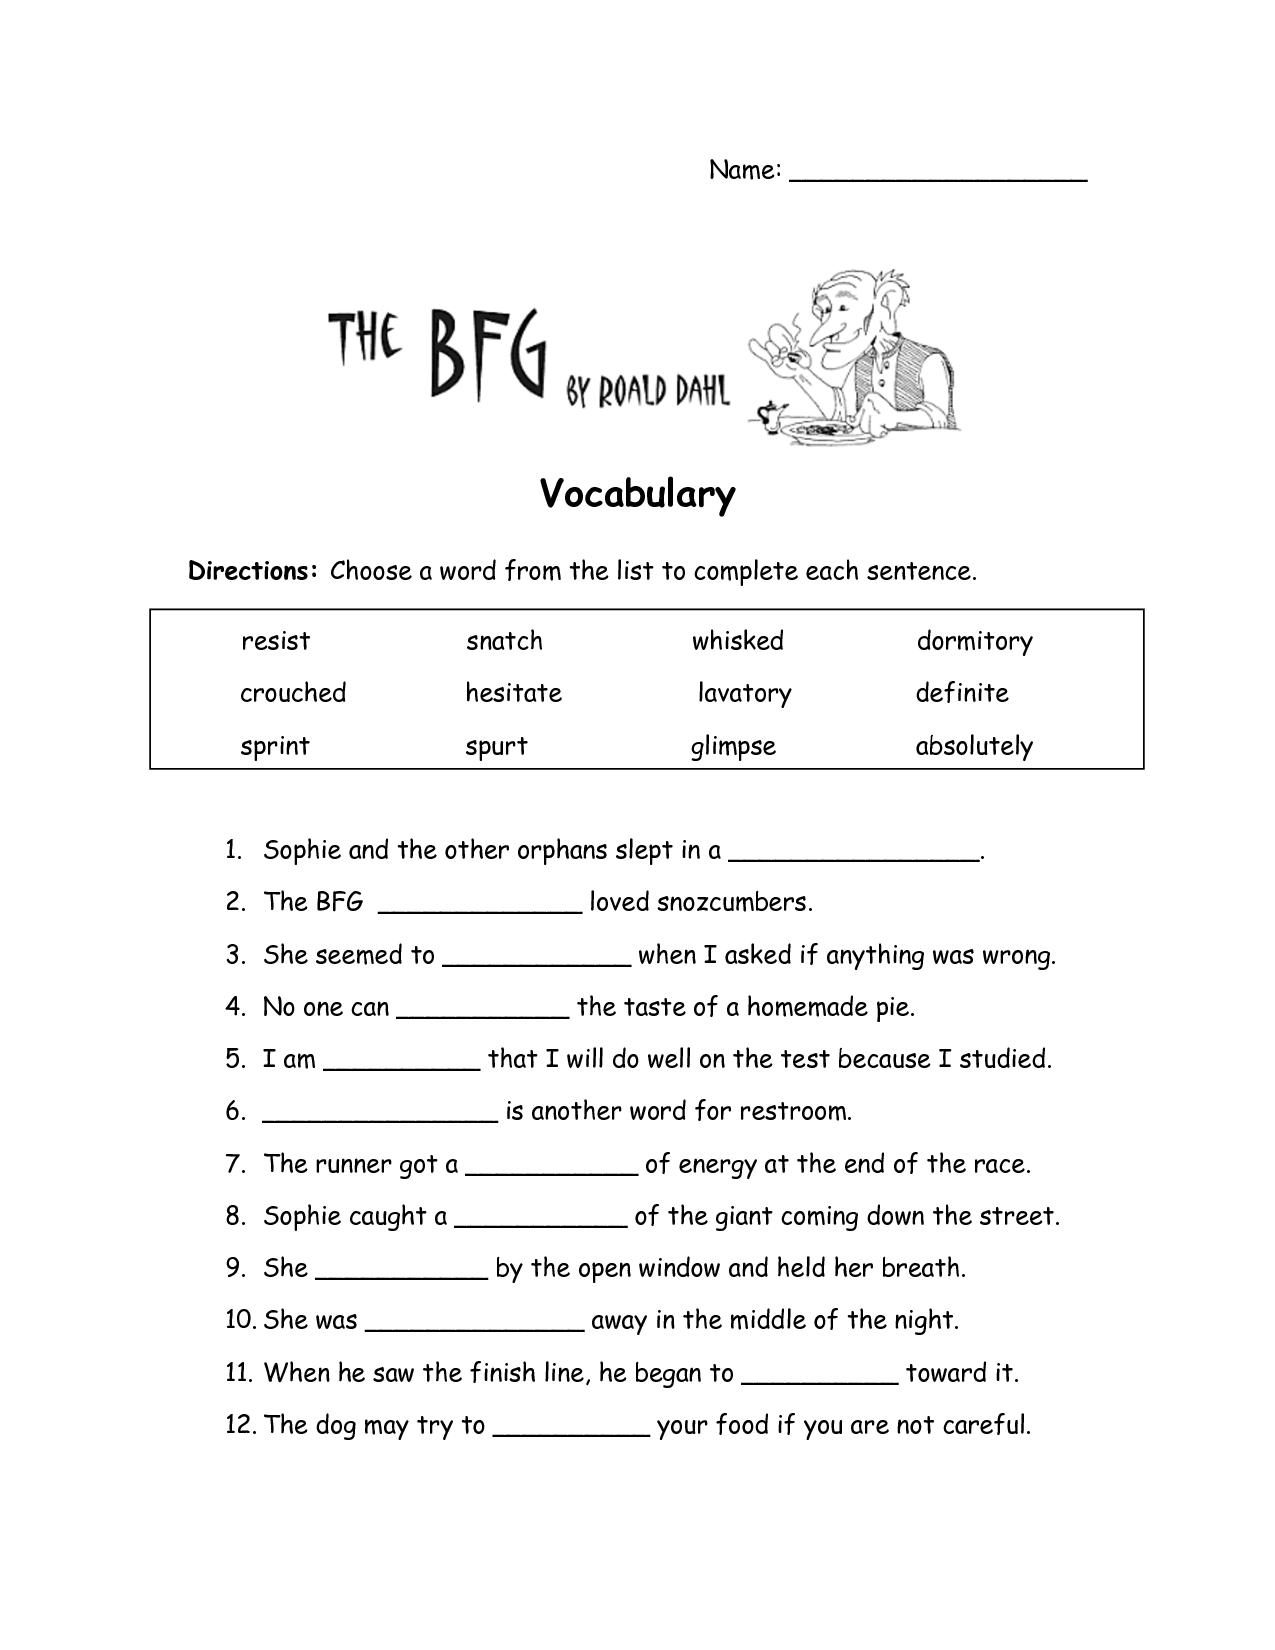 the bfg worksheets the bfg vocabulary worksheet education items rh pinterest com